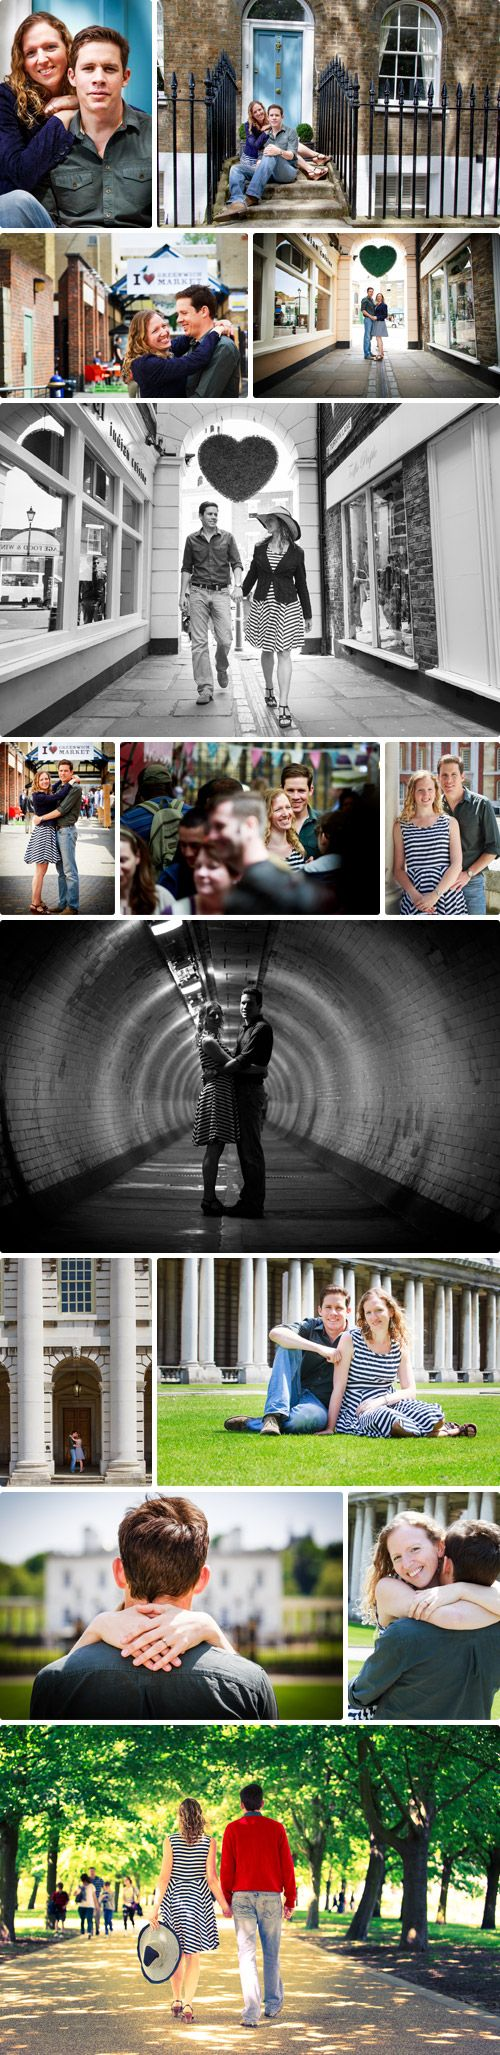 Greenwich Engagement Shoot - Arthur Lewis Photography